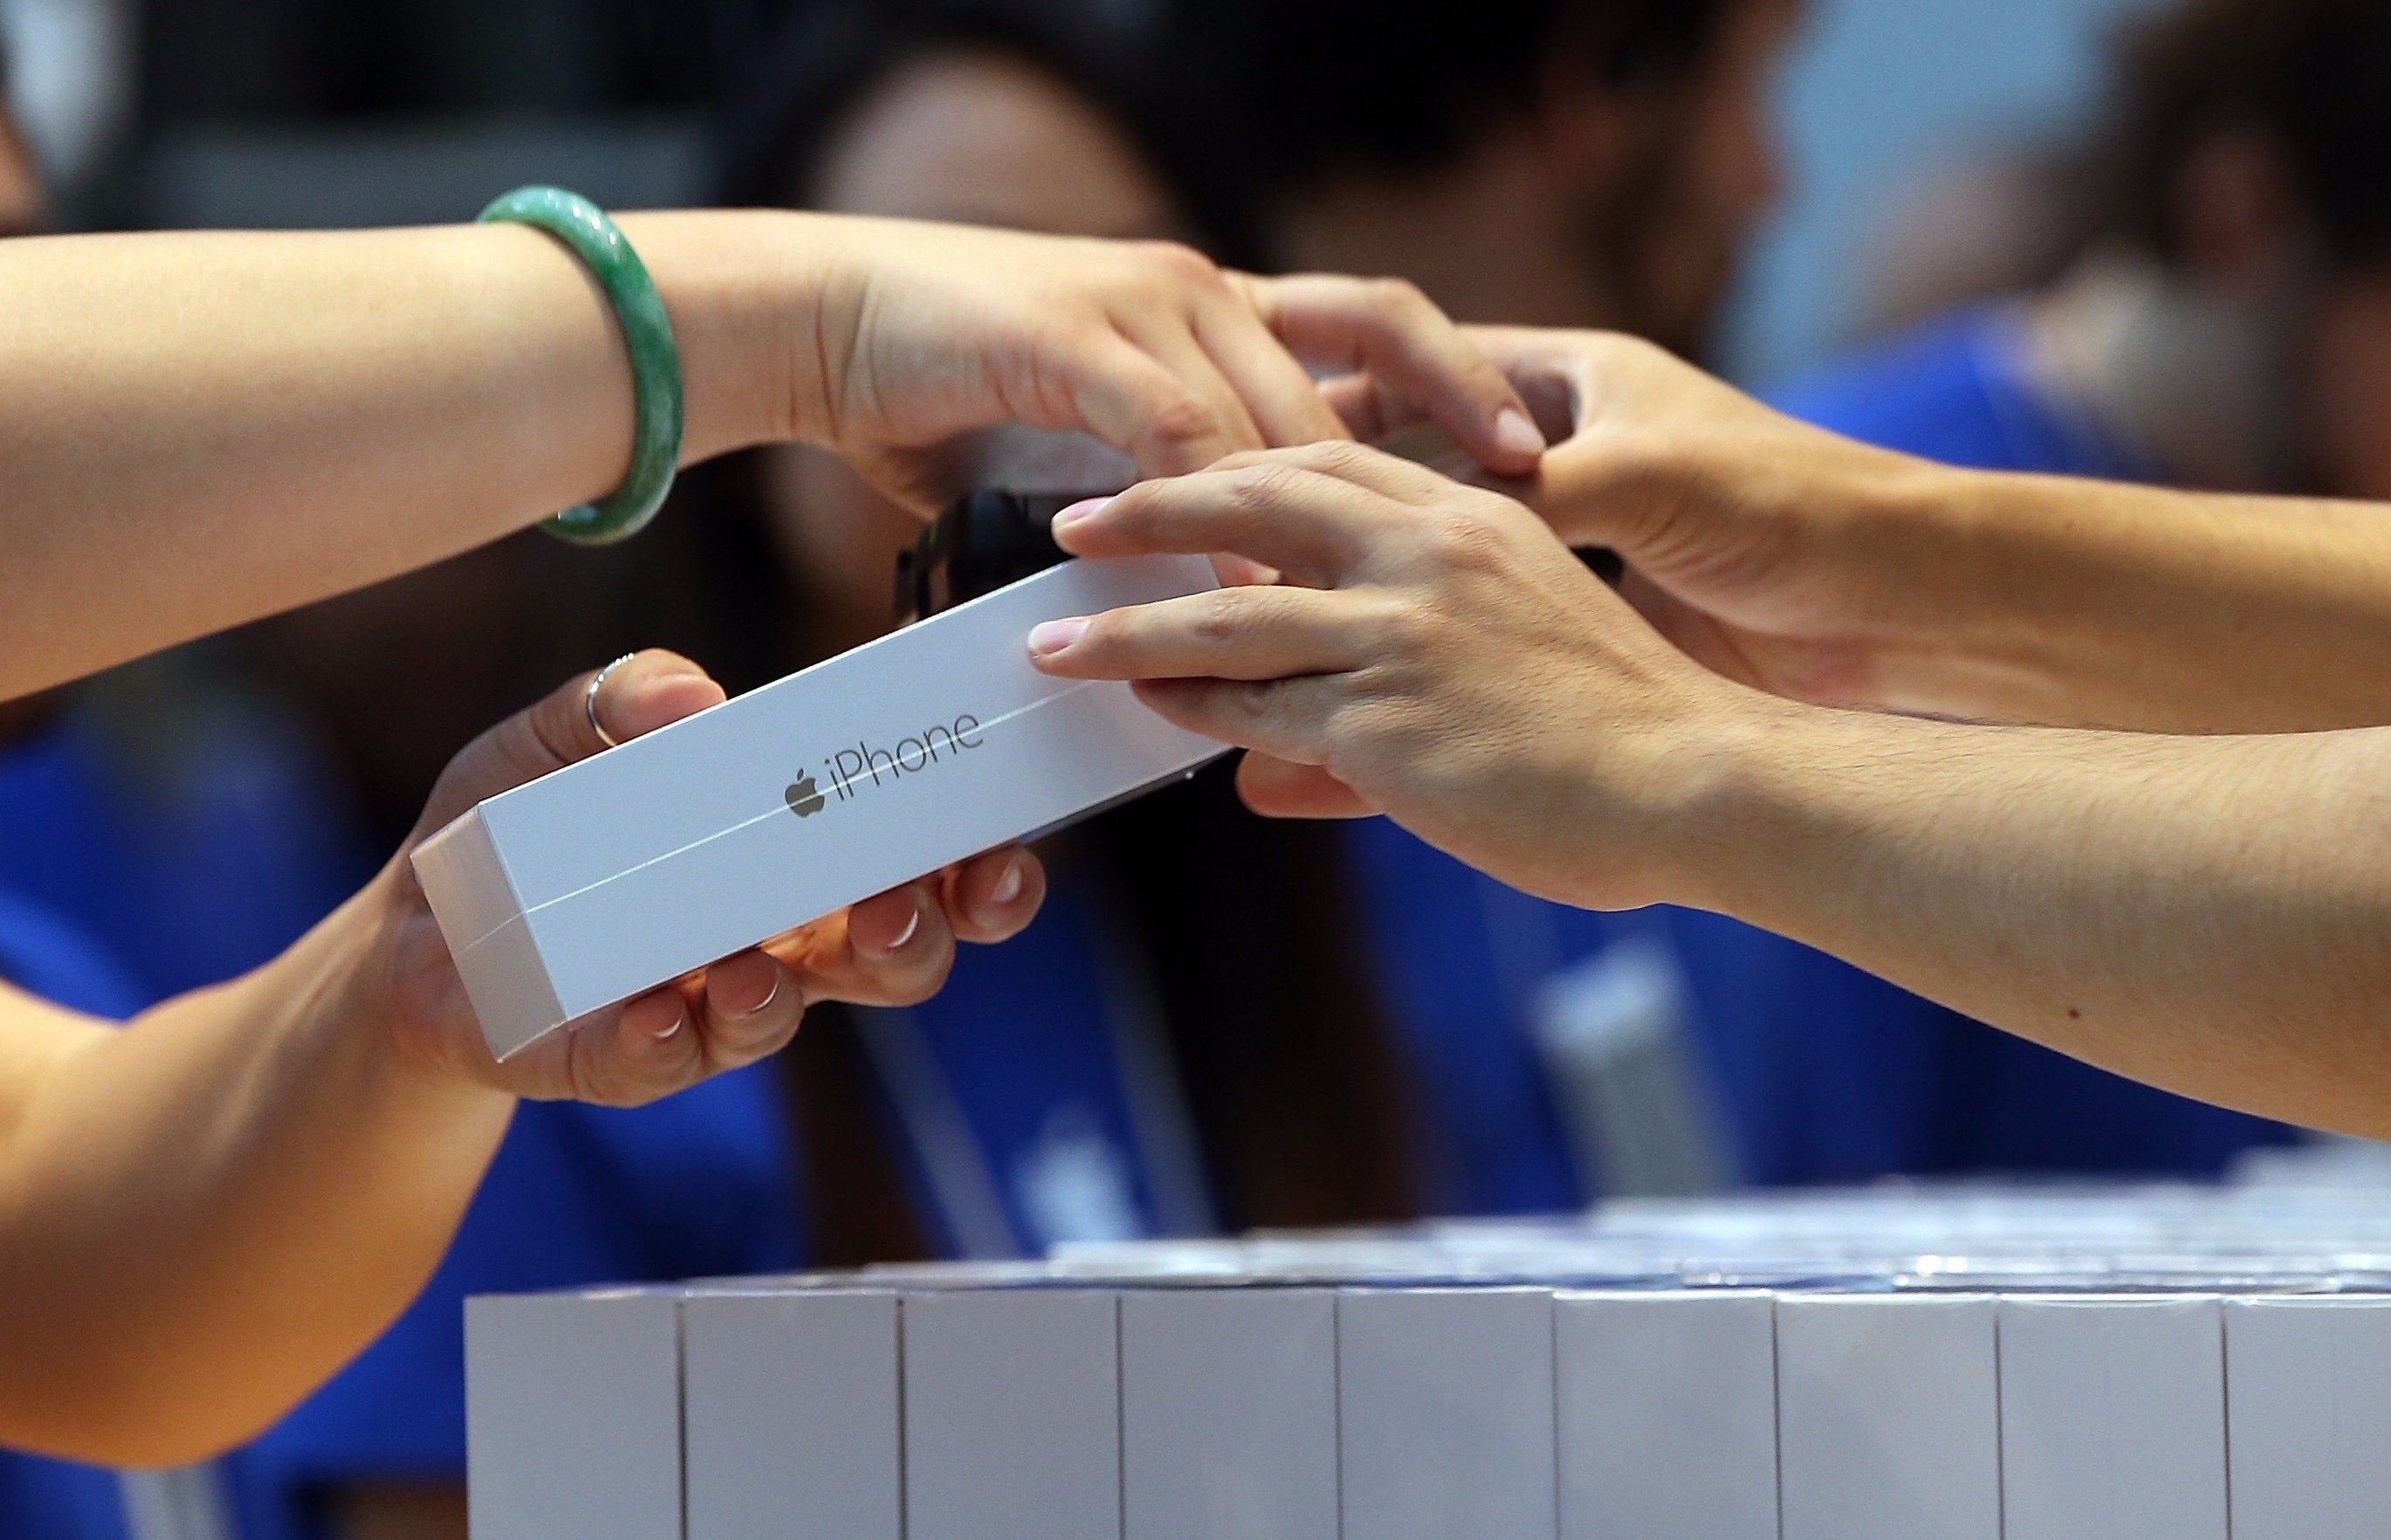 Apple may lower the prices in Russia